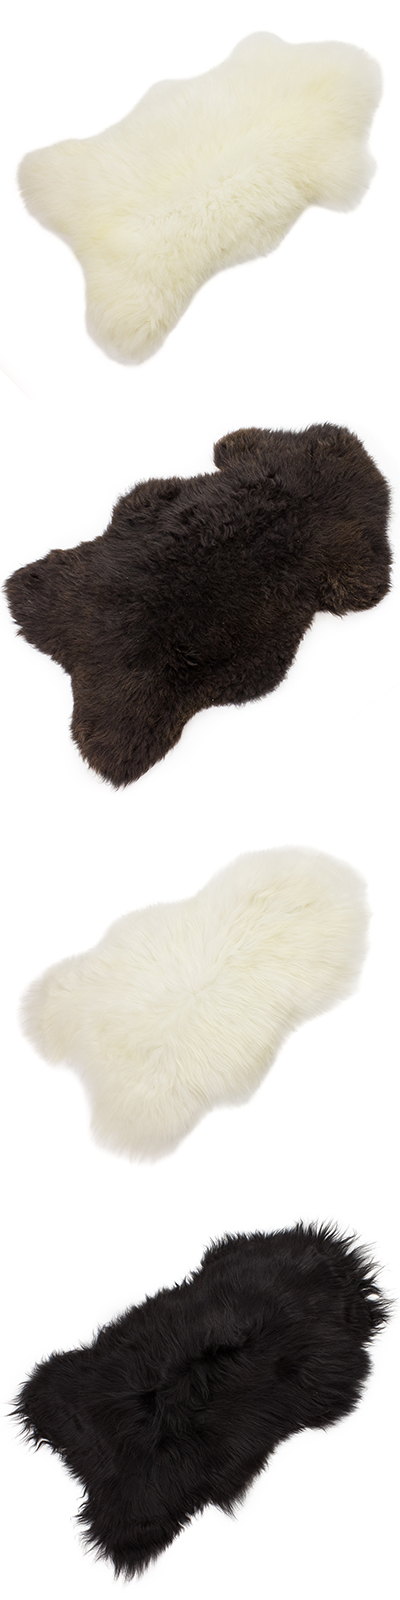 wholesale sheepskin rugs